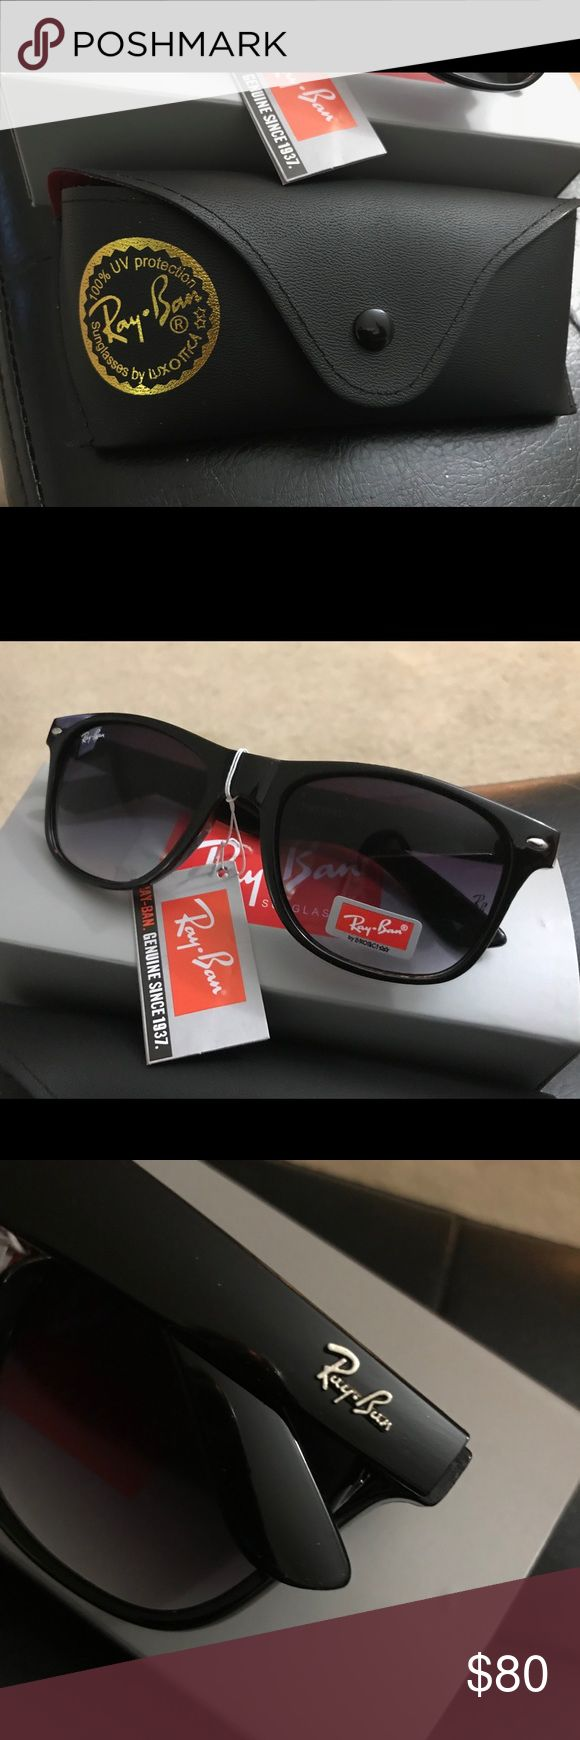 Black Ray Bans-Brand New Black Original Wayfarer Ray Bans-NEW never worn Accessories Watches